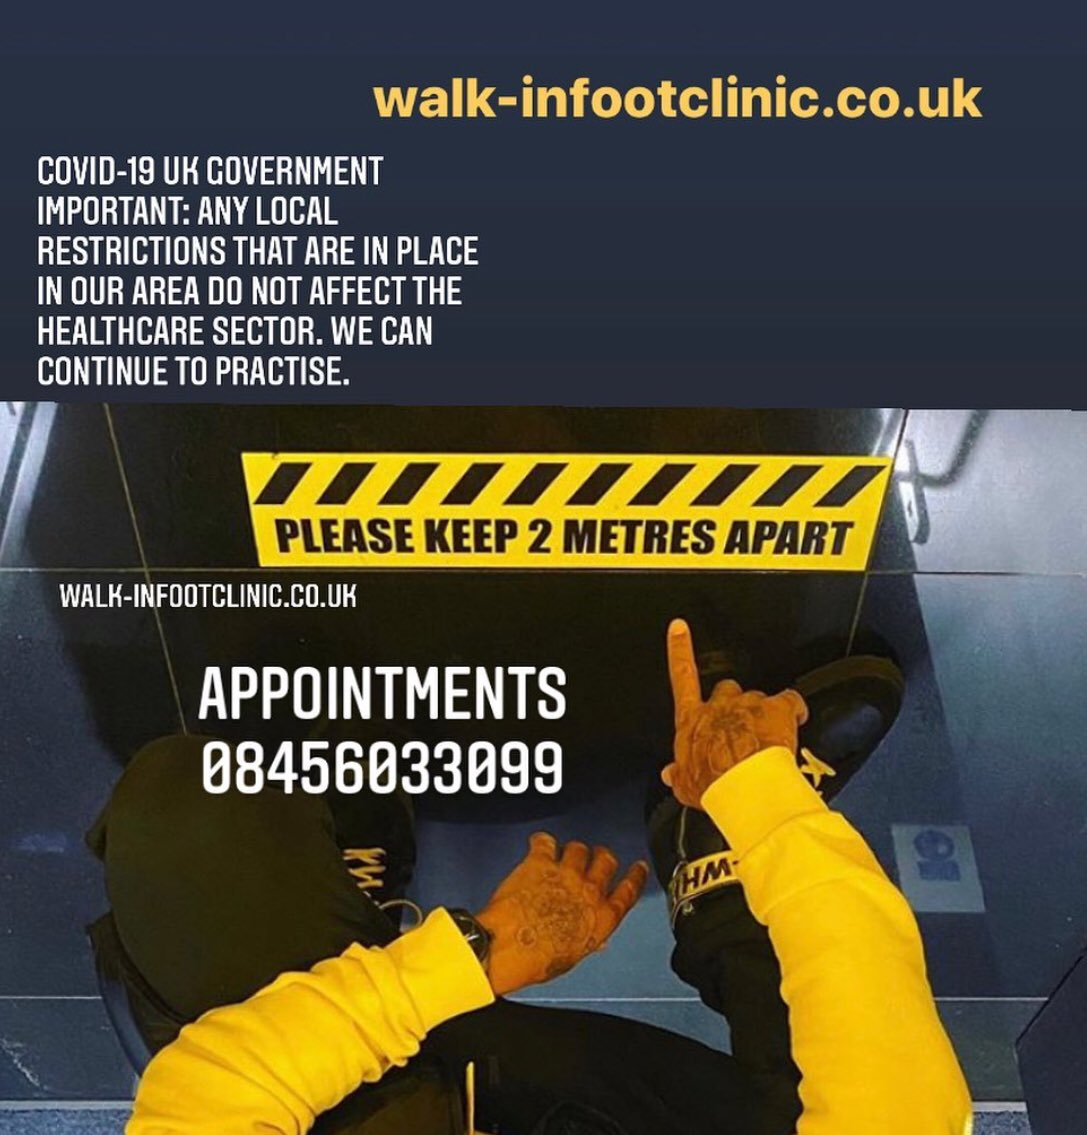 We are open. Call 08456033099. #COVID19 #feet #insoles #London https://t.co/ugWhK7jQQE